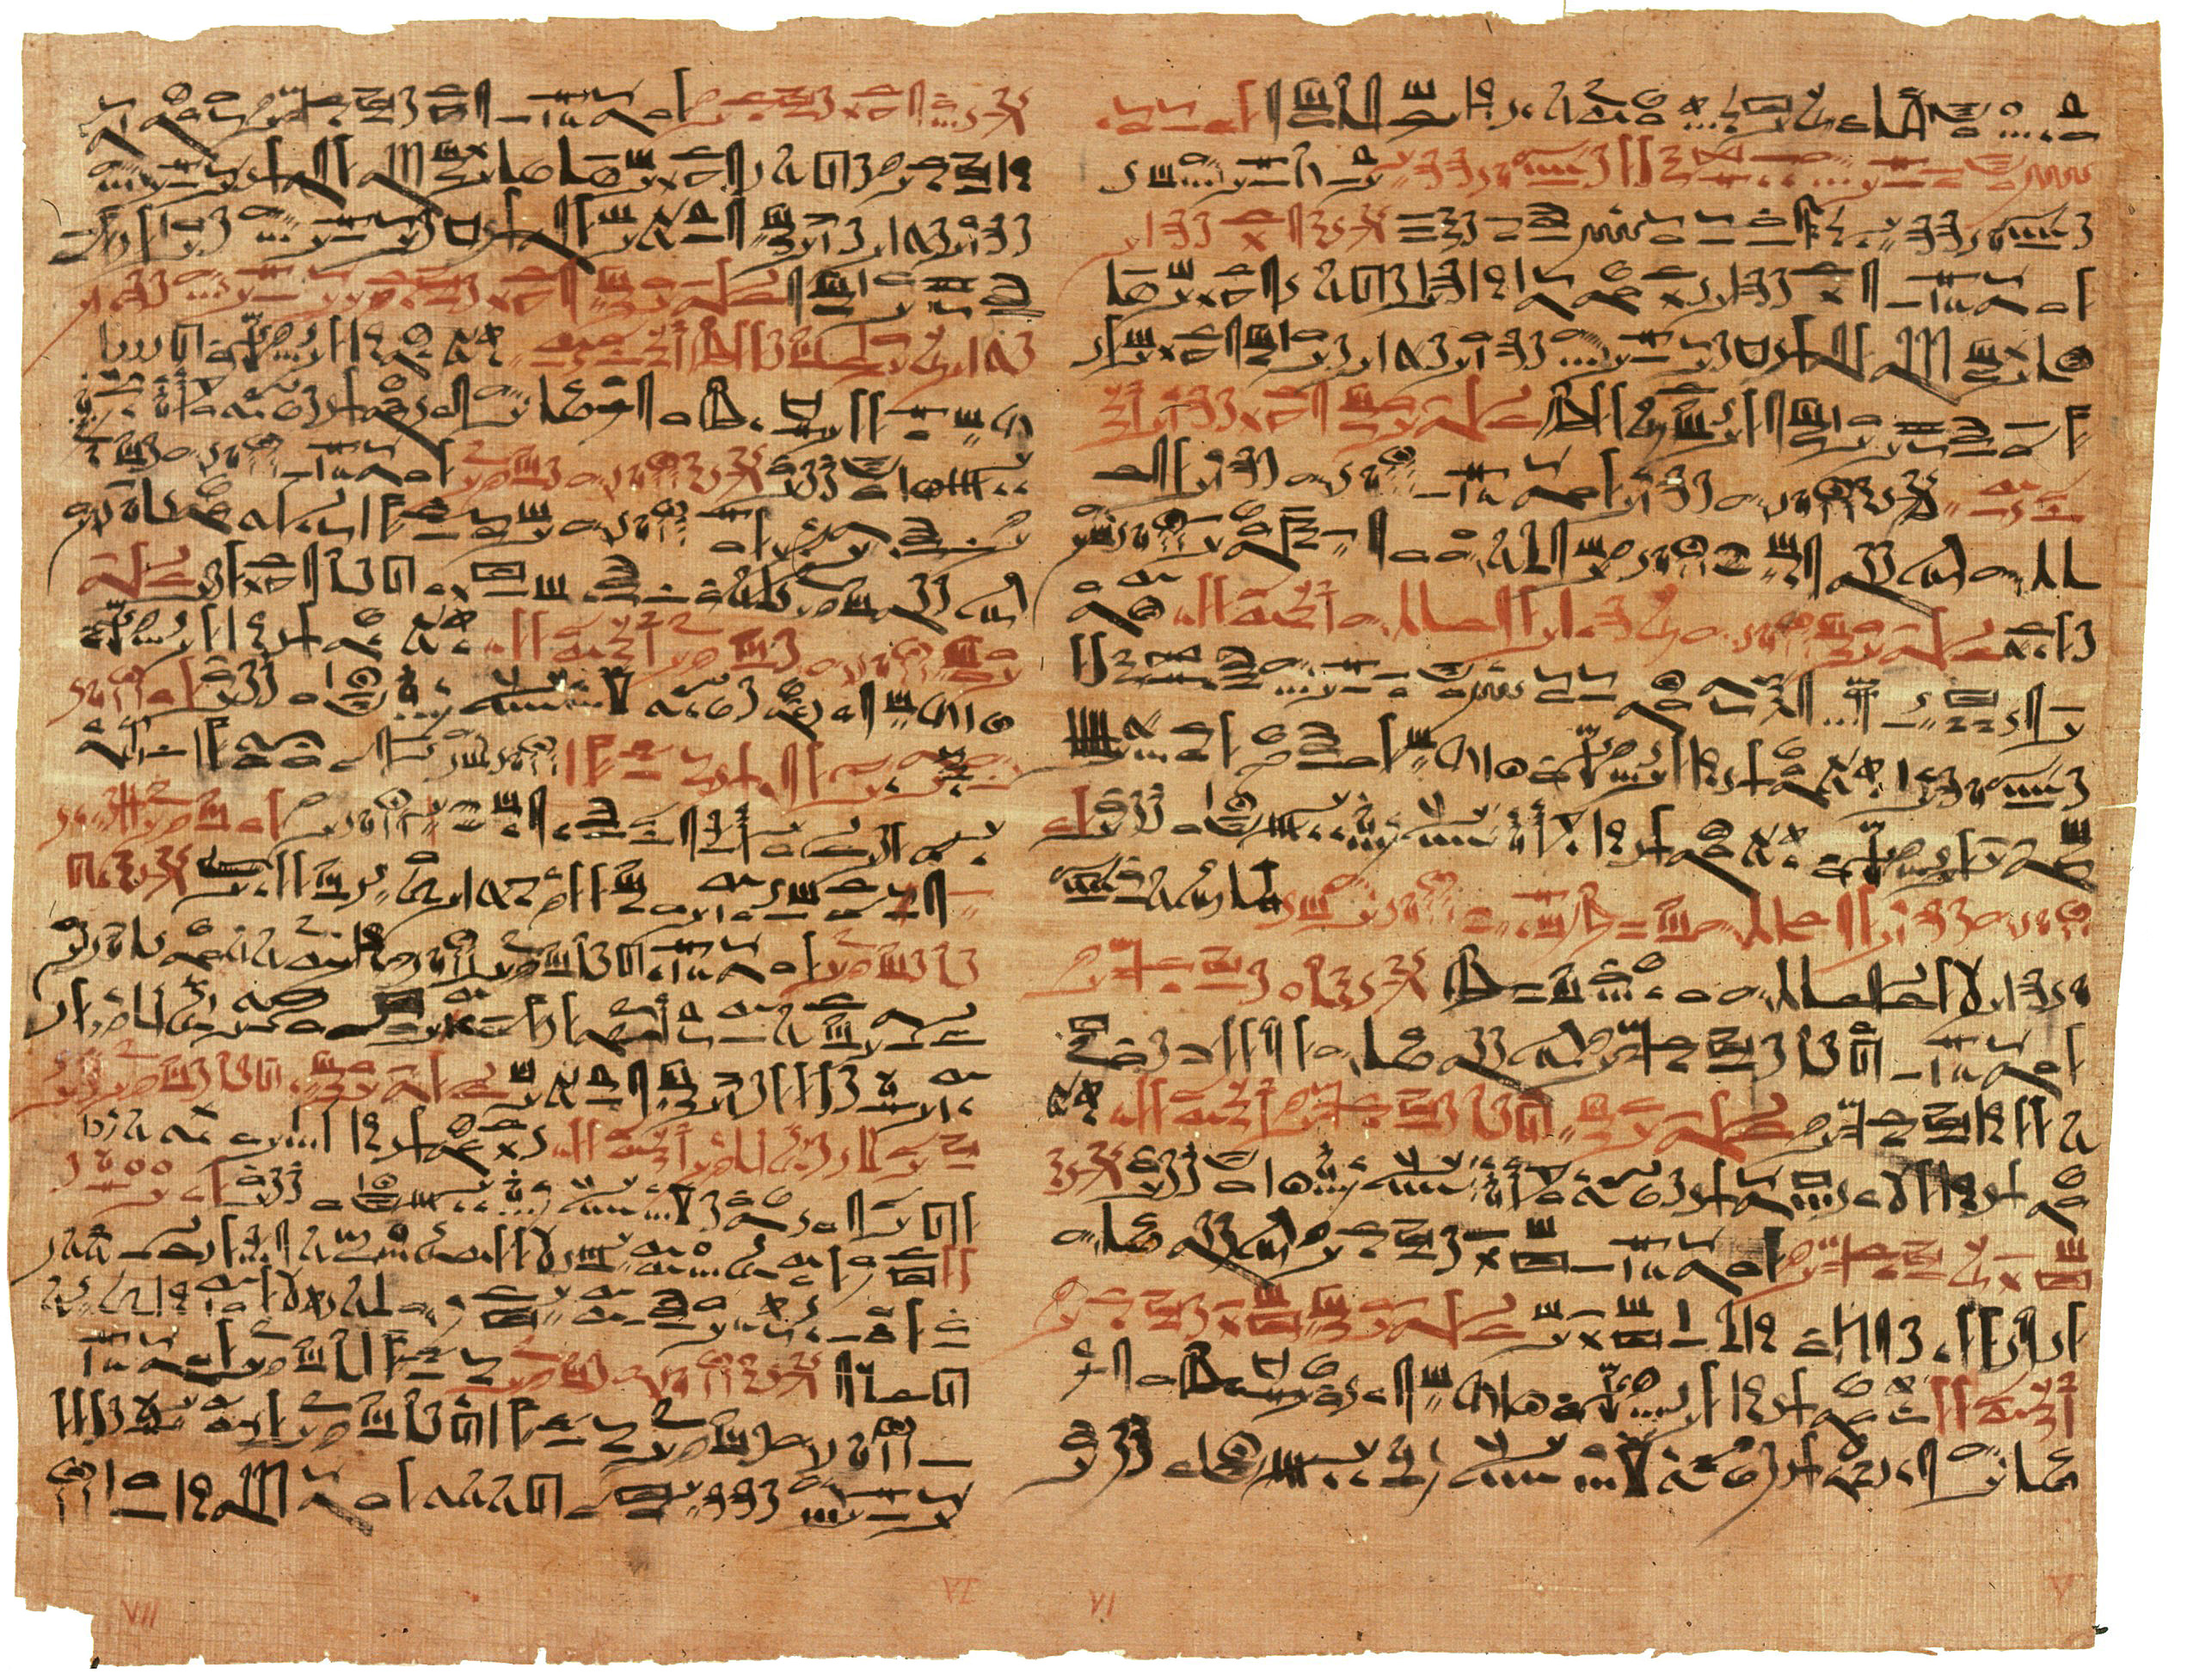 The treatise that may have been inspired by Imhotep's early efforts, written in a beautiful hieratic script.